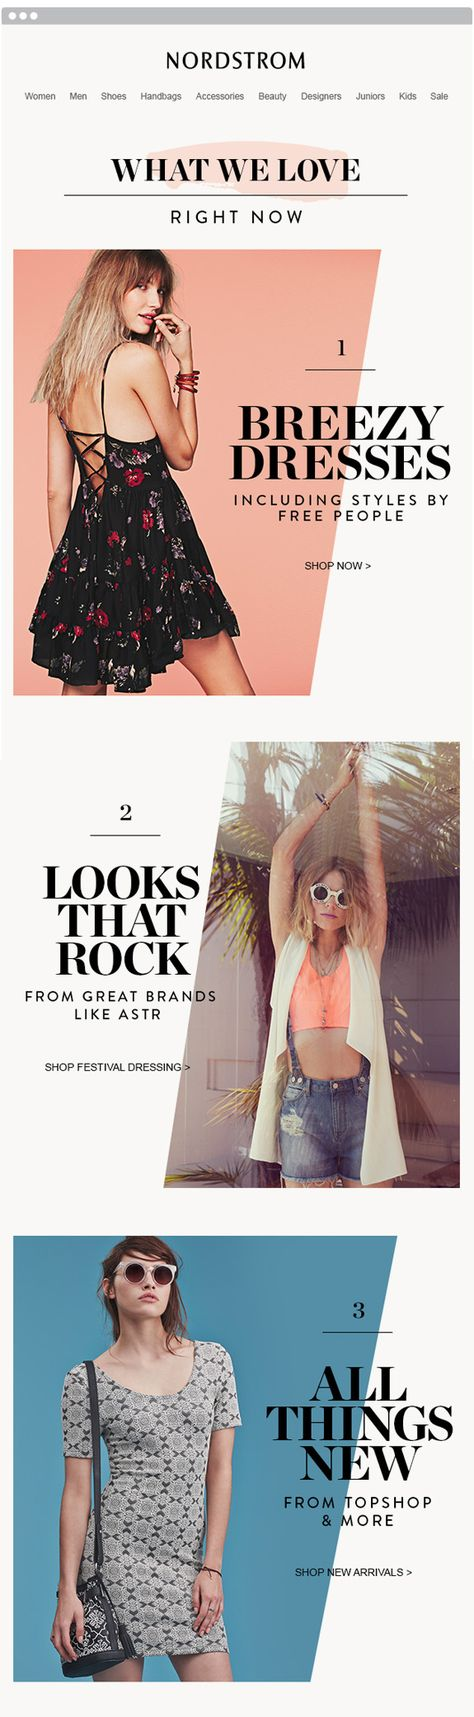 Nordstrom – Siotes